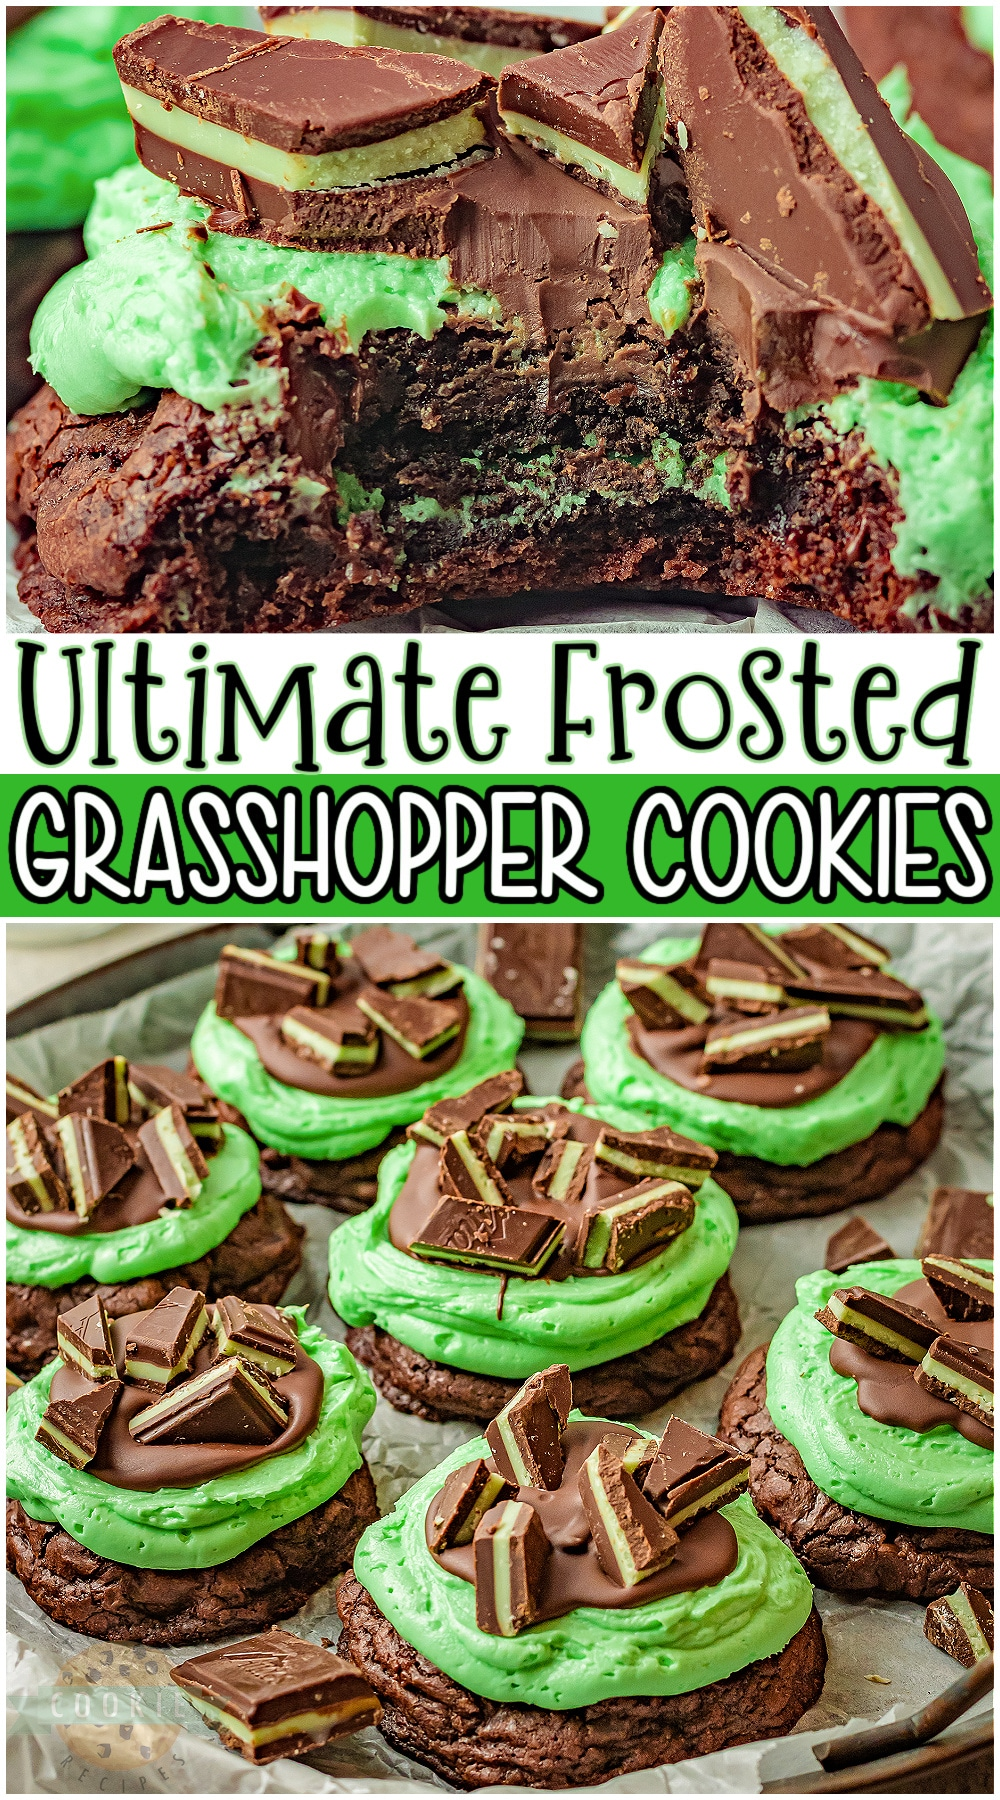 Grasshopper cookies are fudgy brownie cookies stuffed with a Mint Oreo and topped with the ultimate mint chocolate frosting! Indulgent mint chocolate cookies perfect for the holidays. #mint #cookies #chocolate #grasshopper #baking #easyrecipe from FAMILY COOKIE RECIPES via @buttergirls